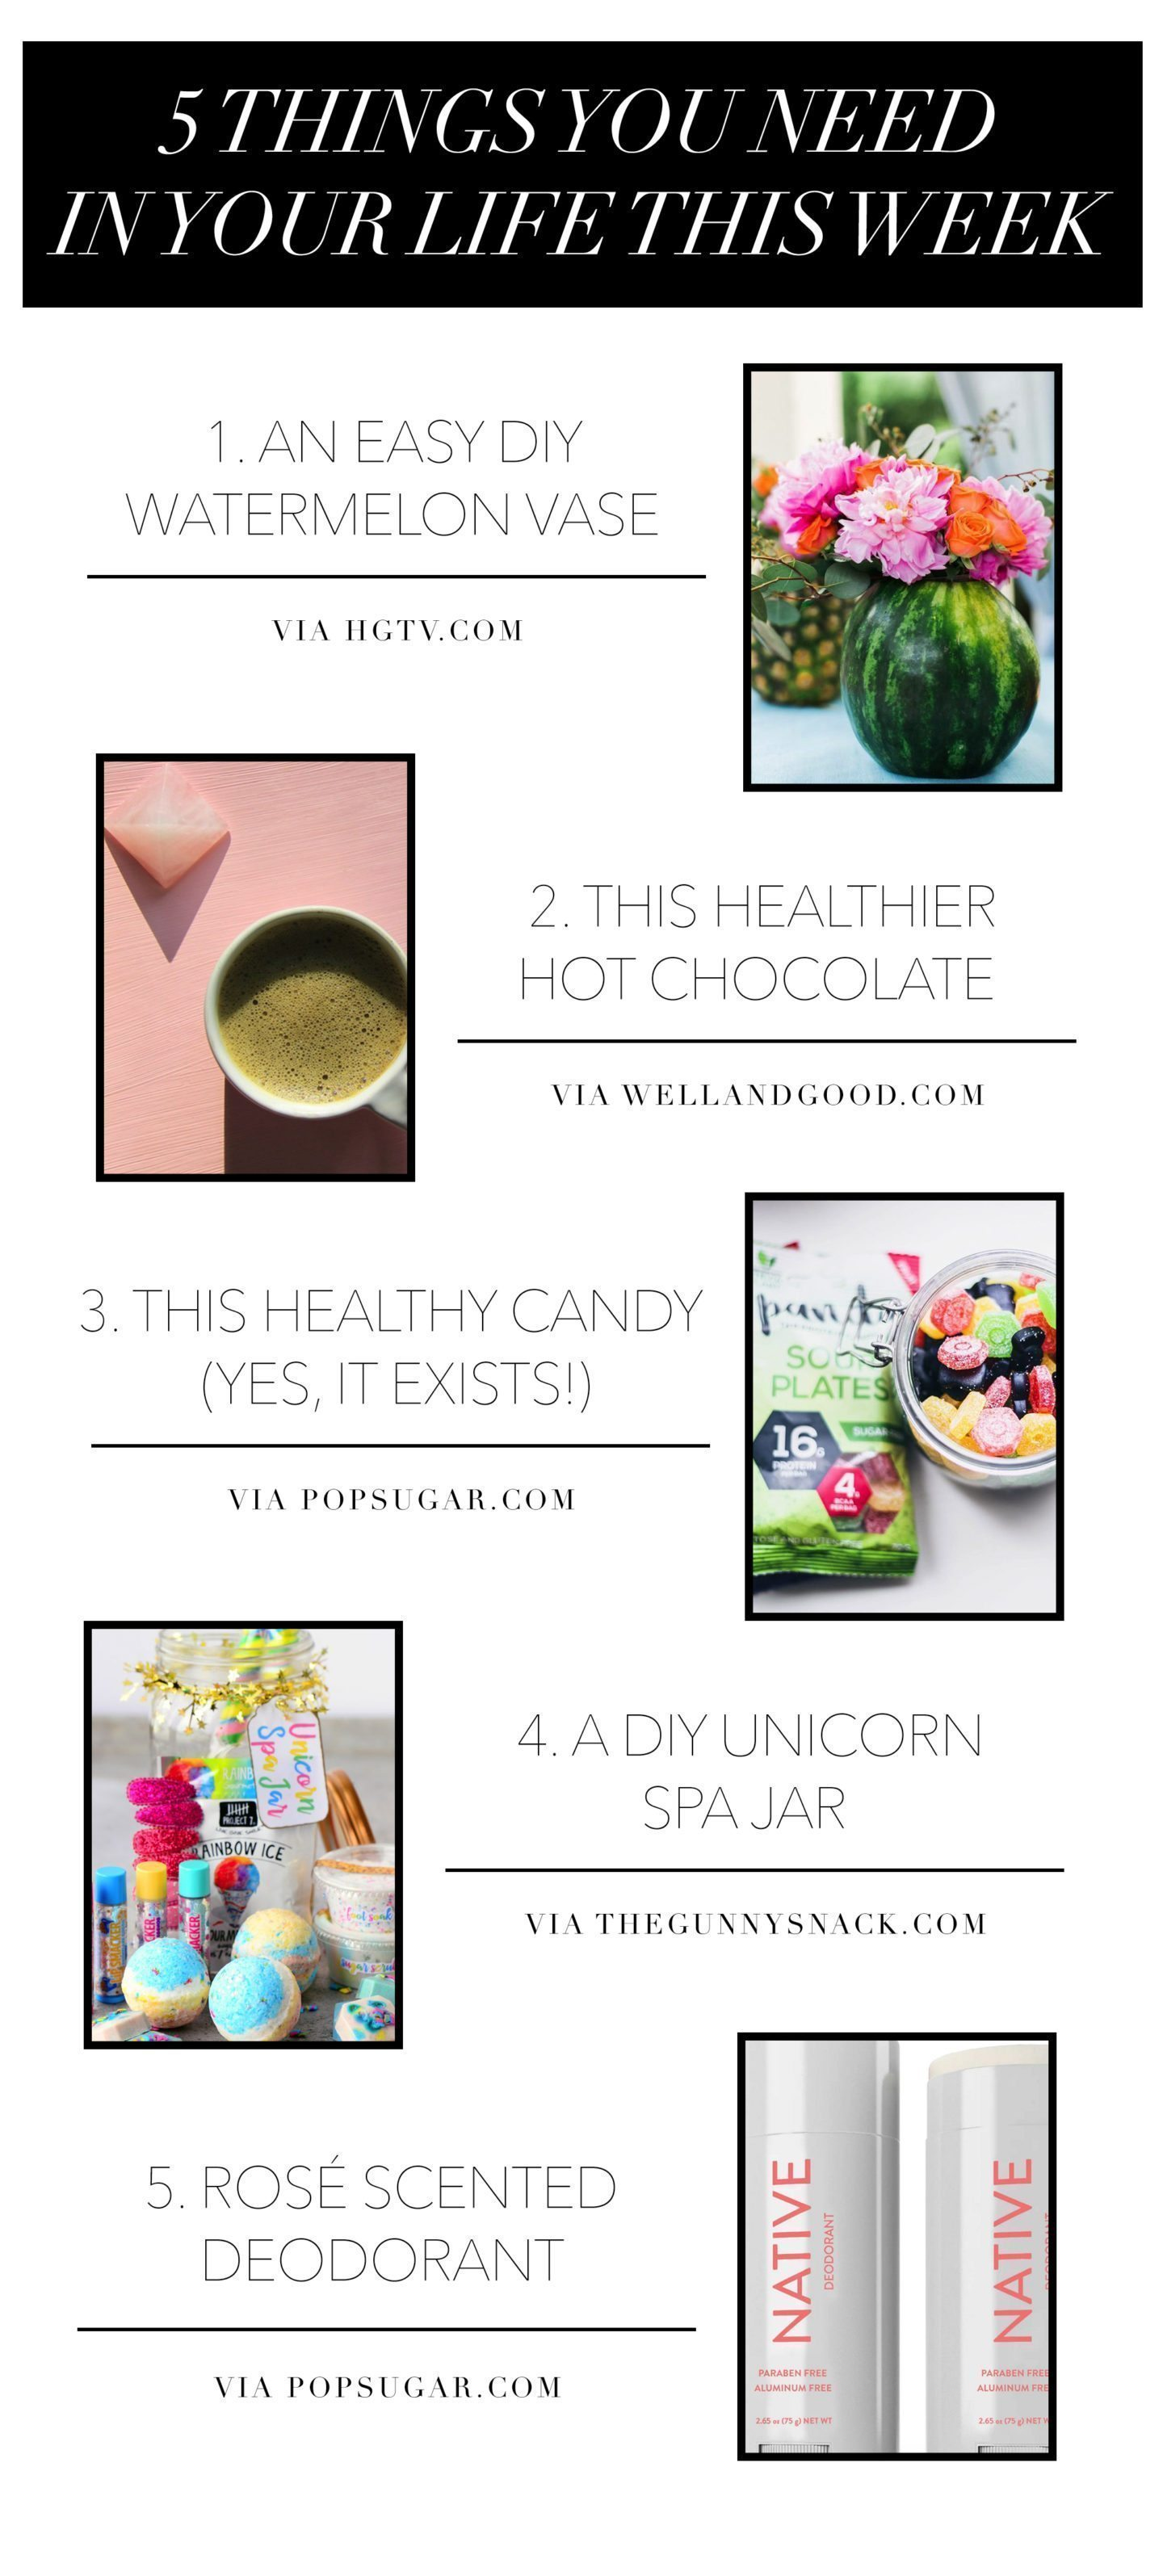 5 Things You Need in Your Life This Week 9/1/17)